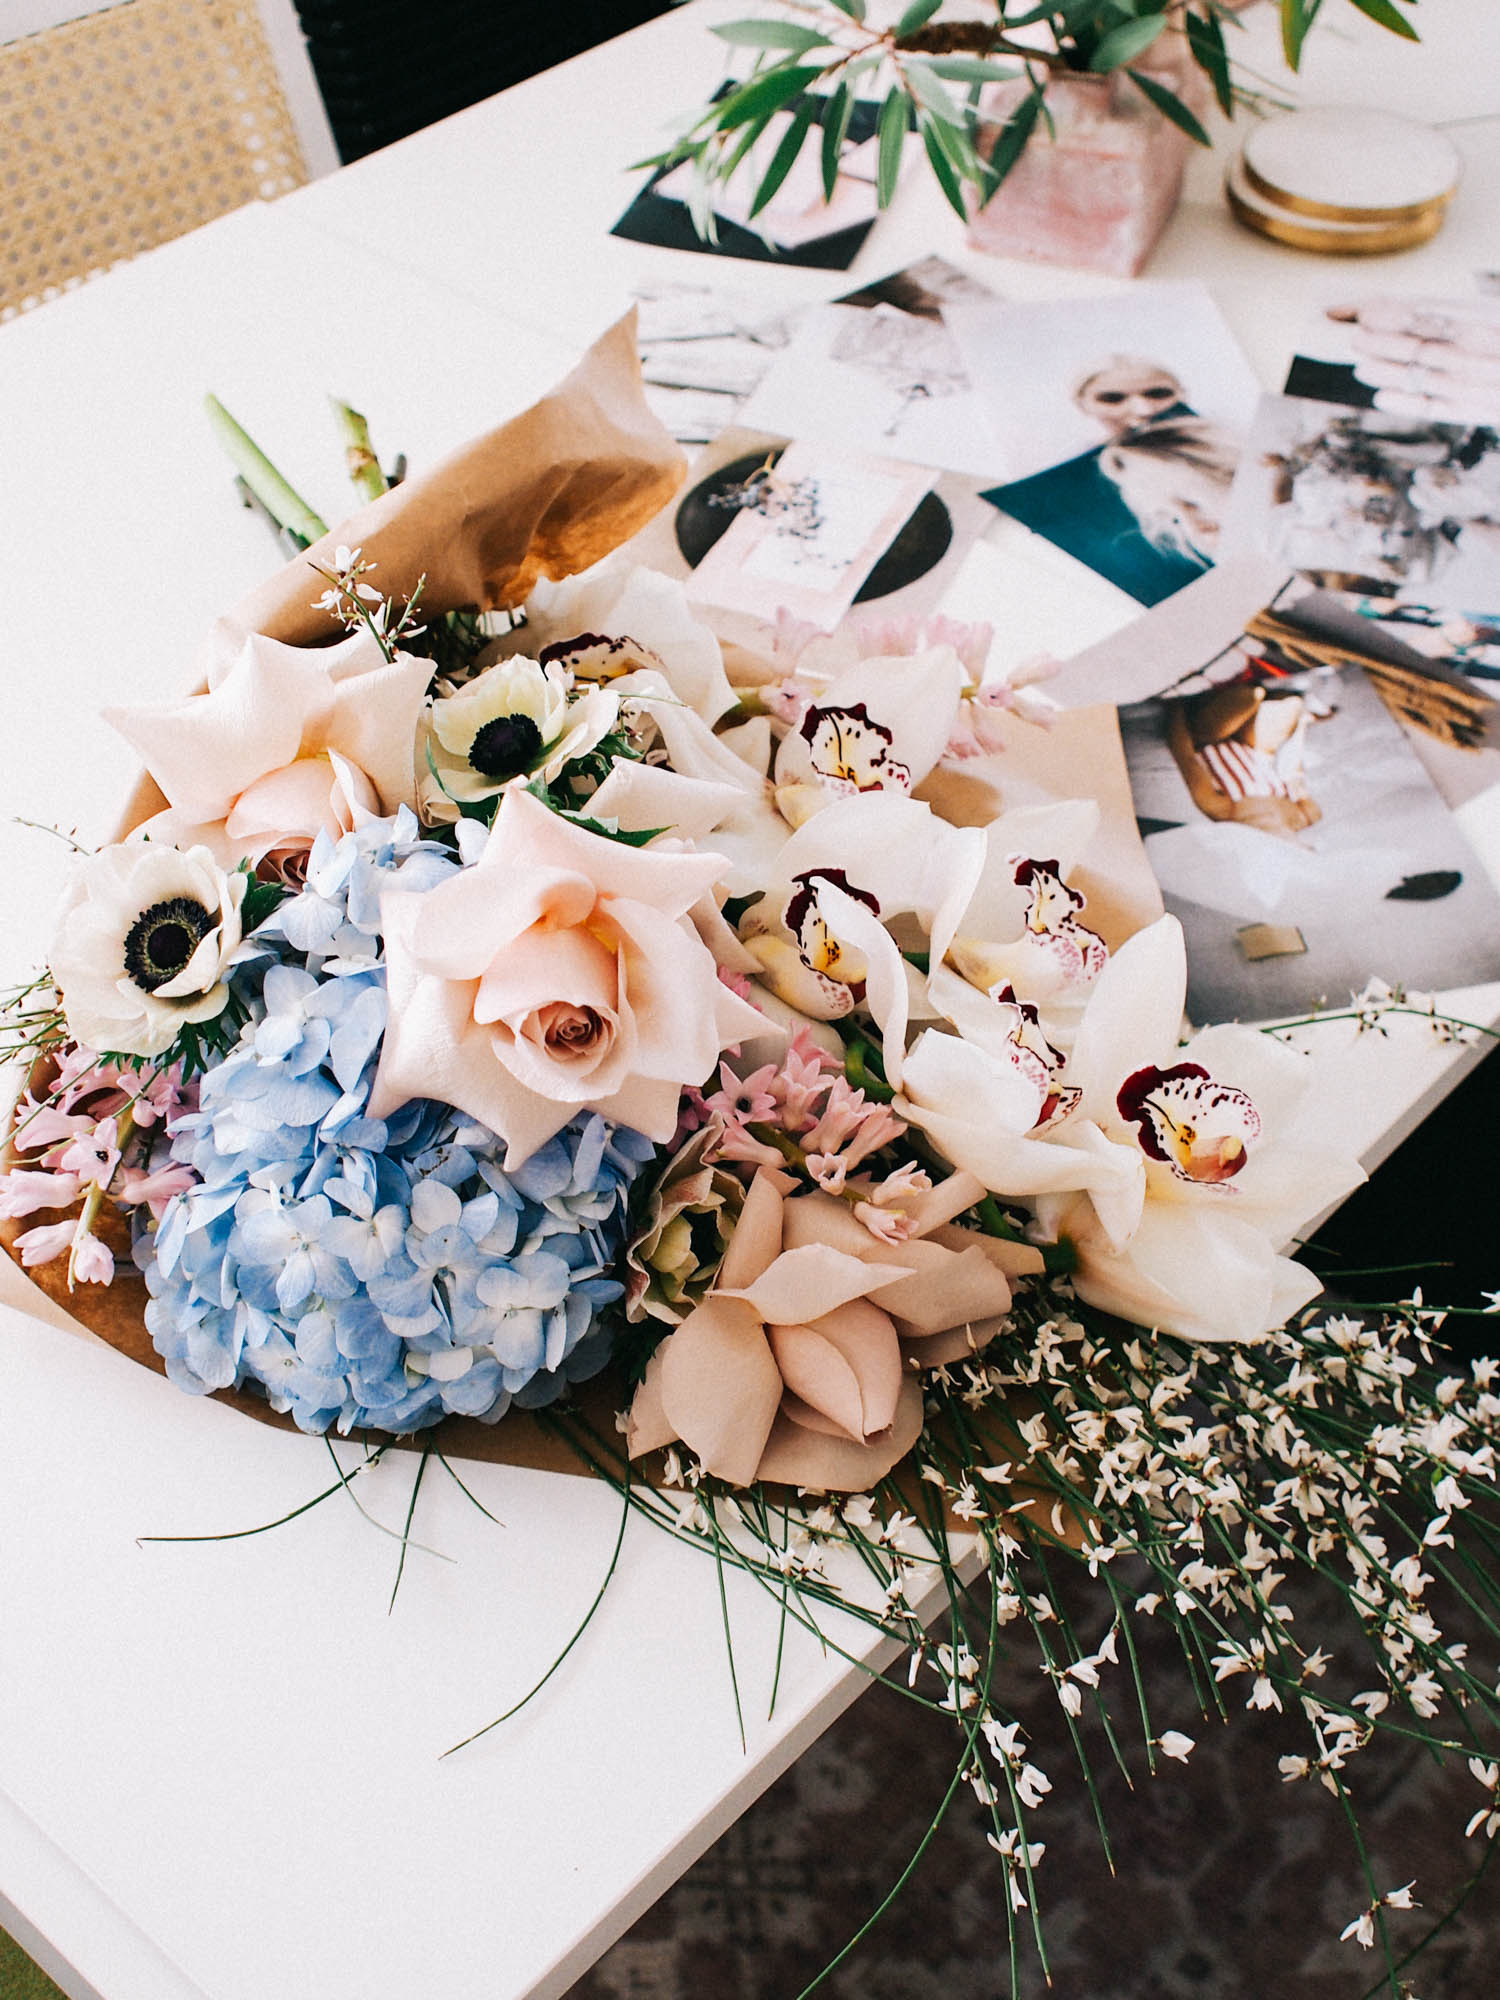 A Day in the life // Sourcing flowers and props for shoots | A Fabulous Fete